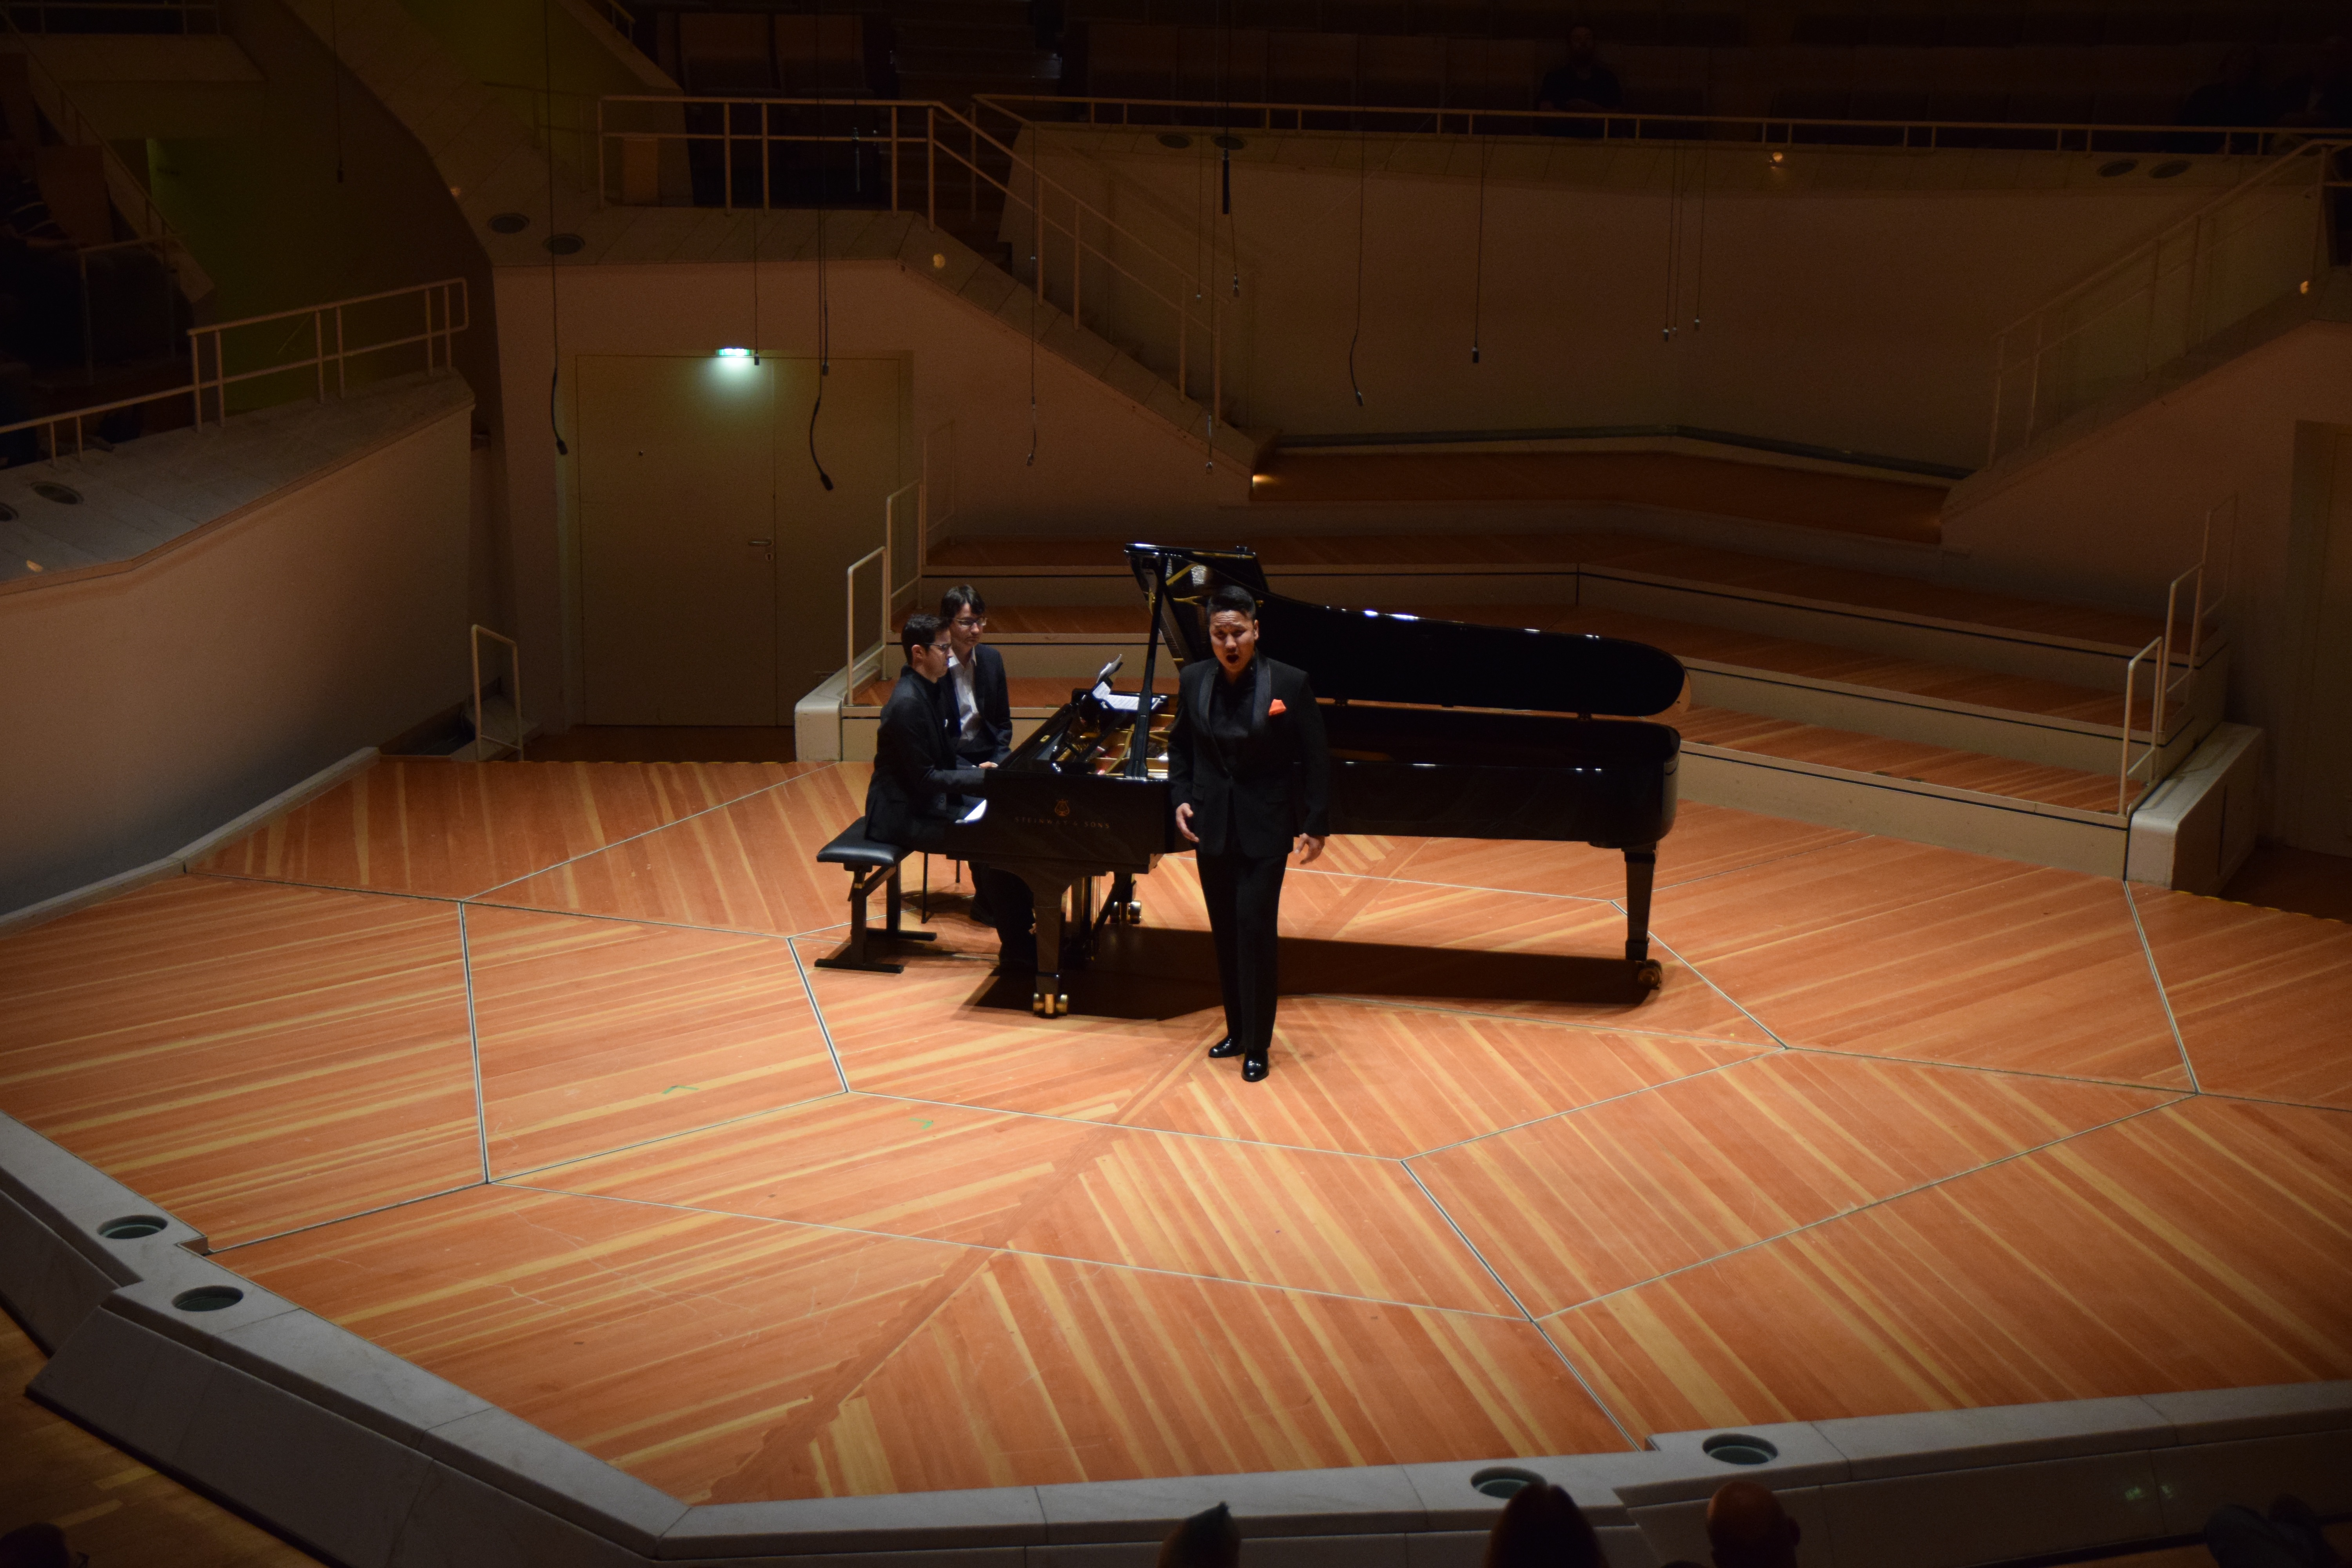 berliner music competition 18